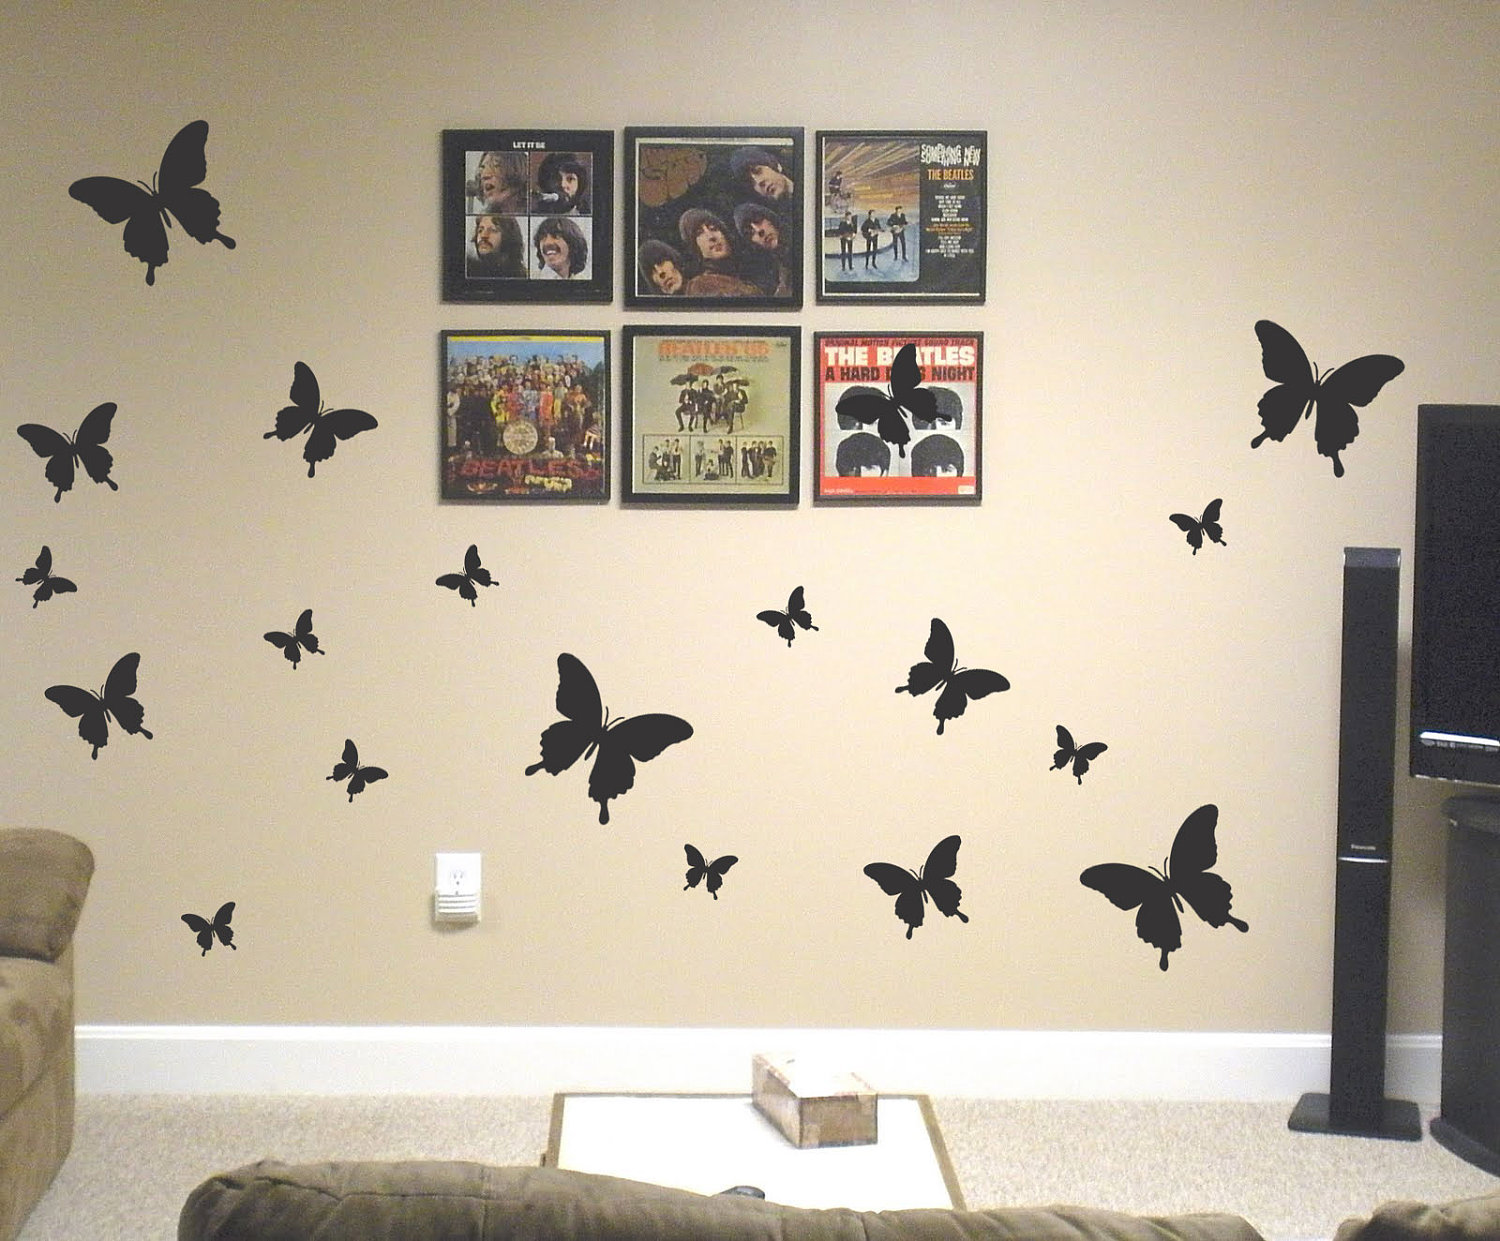 Complete Awesome Media Room With Black Butterfly Wall Art Ideas Near Fluffy  Sofas On Grey Flooring